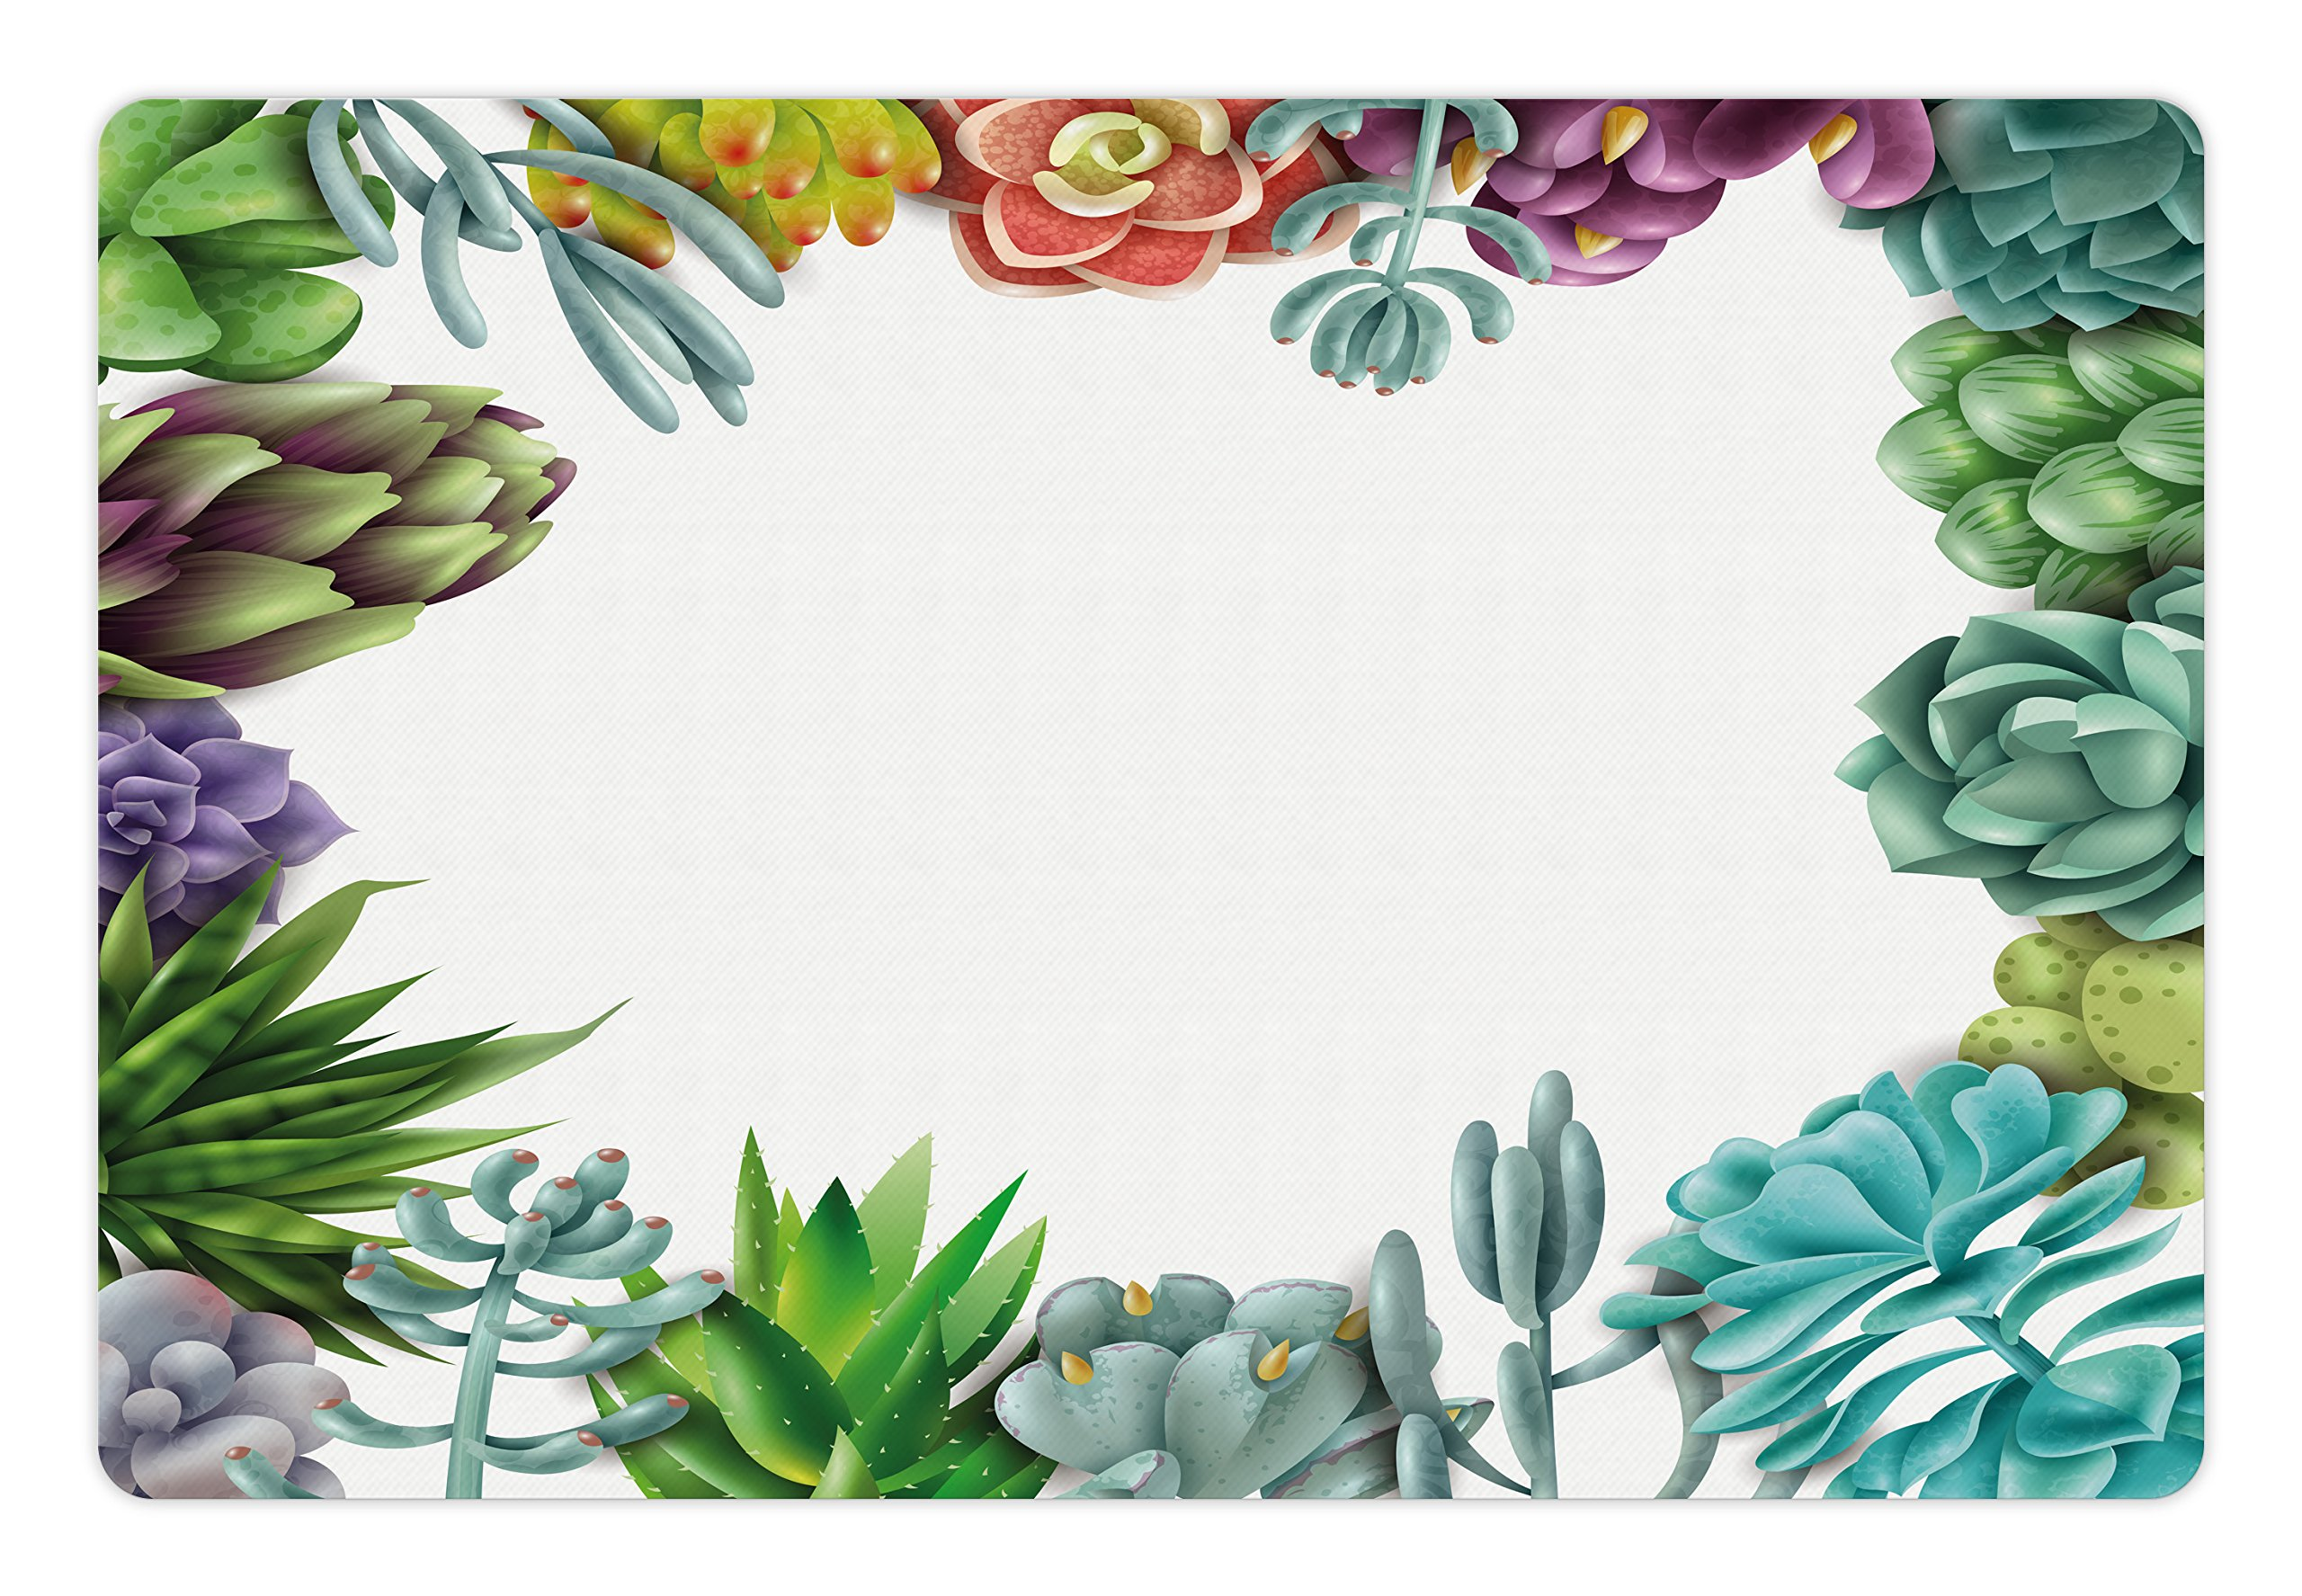 Lunarable Succulent Pet Mat for Food and Water, Frame with Various Succulent Plants Collection Vivid Garden Tropical Nature Image, Rectangle Non-Slip Rubber Mat for Dogs and Cats, Multicolor